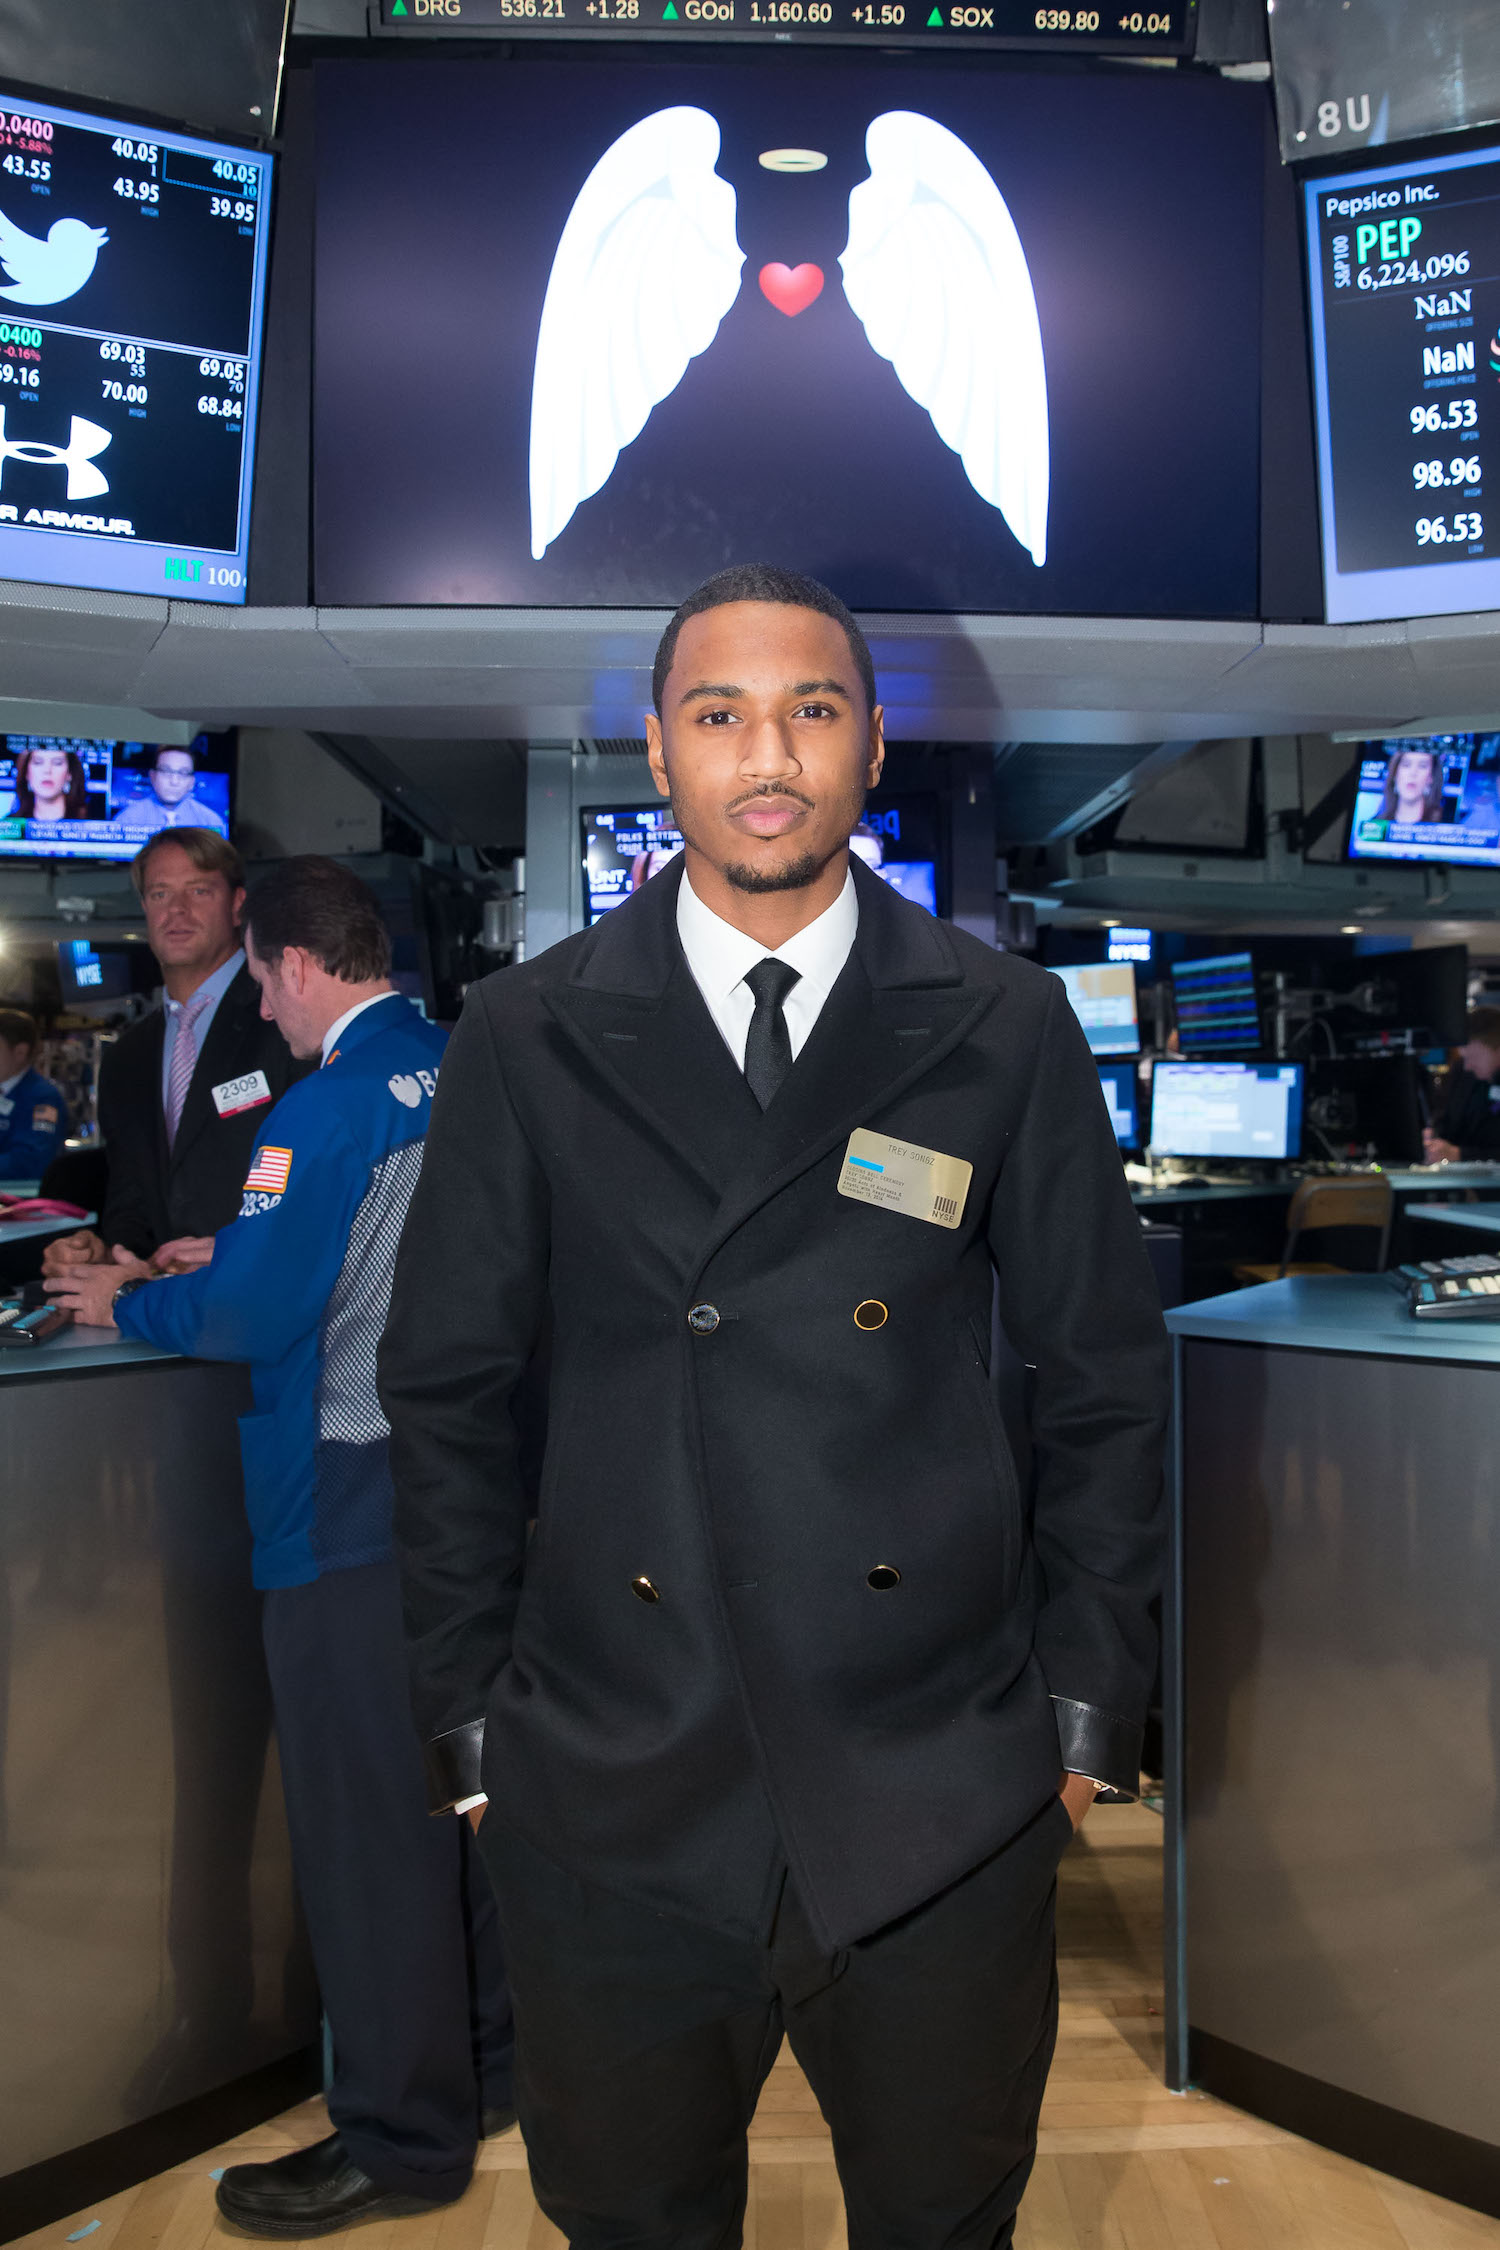 NEW YORK, NY – NOVEMBER 13: Entertainer Trey Songz Rings NYSE Closing Bell to Highlight 30 Acts of Kindness andAngels with Heart Month by ringing the Closing bell at the New York Stock Exchange on November 13, 2014 in New York City. (Photo by Ben Hider/NYSE)